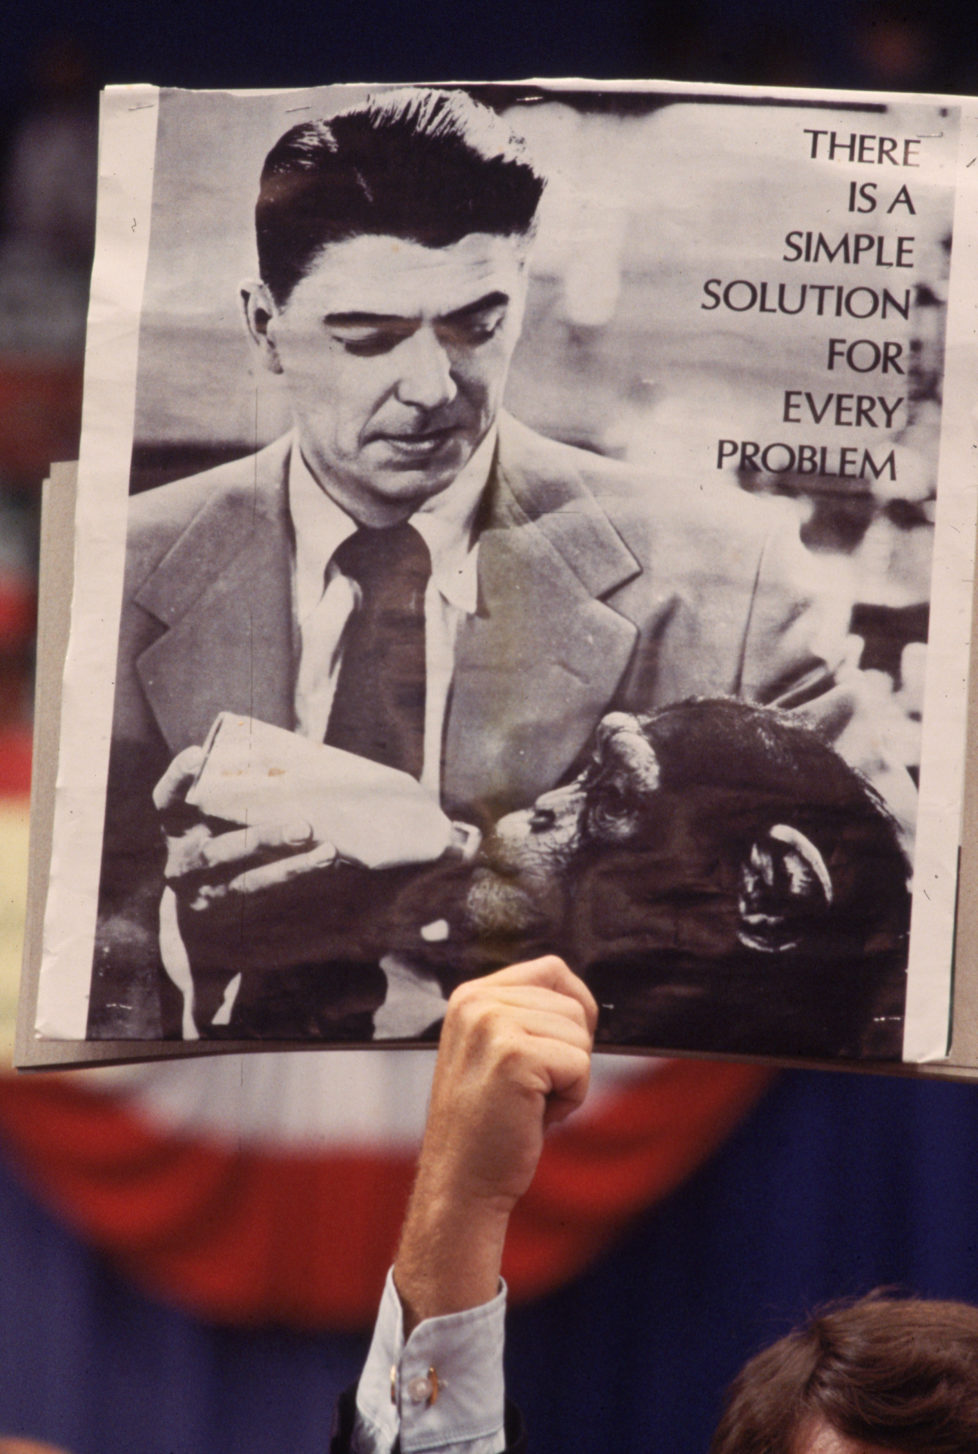 1980: A poster depicting Ronald Reagan bottle feeding a chimp is held aloft at a Democratic Convention in New York. (Photo by Luiz Alberto/Keystone Features/Getty Images)